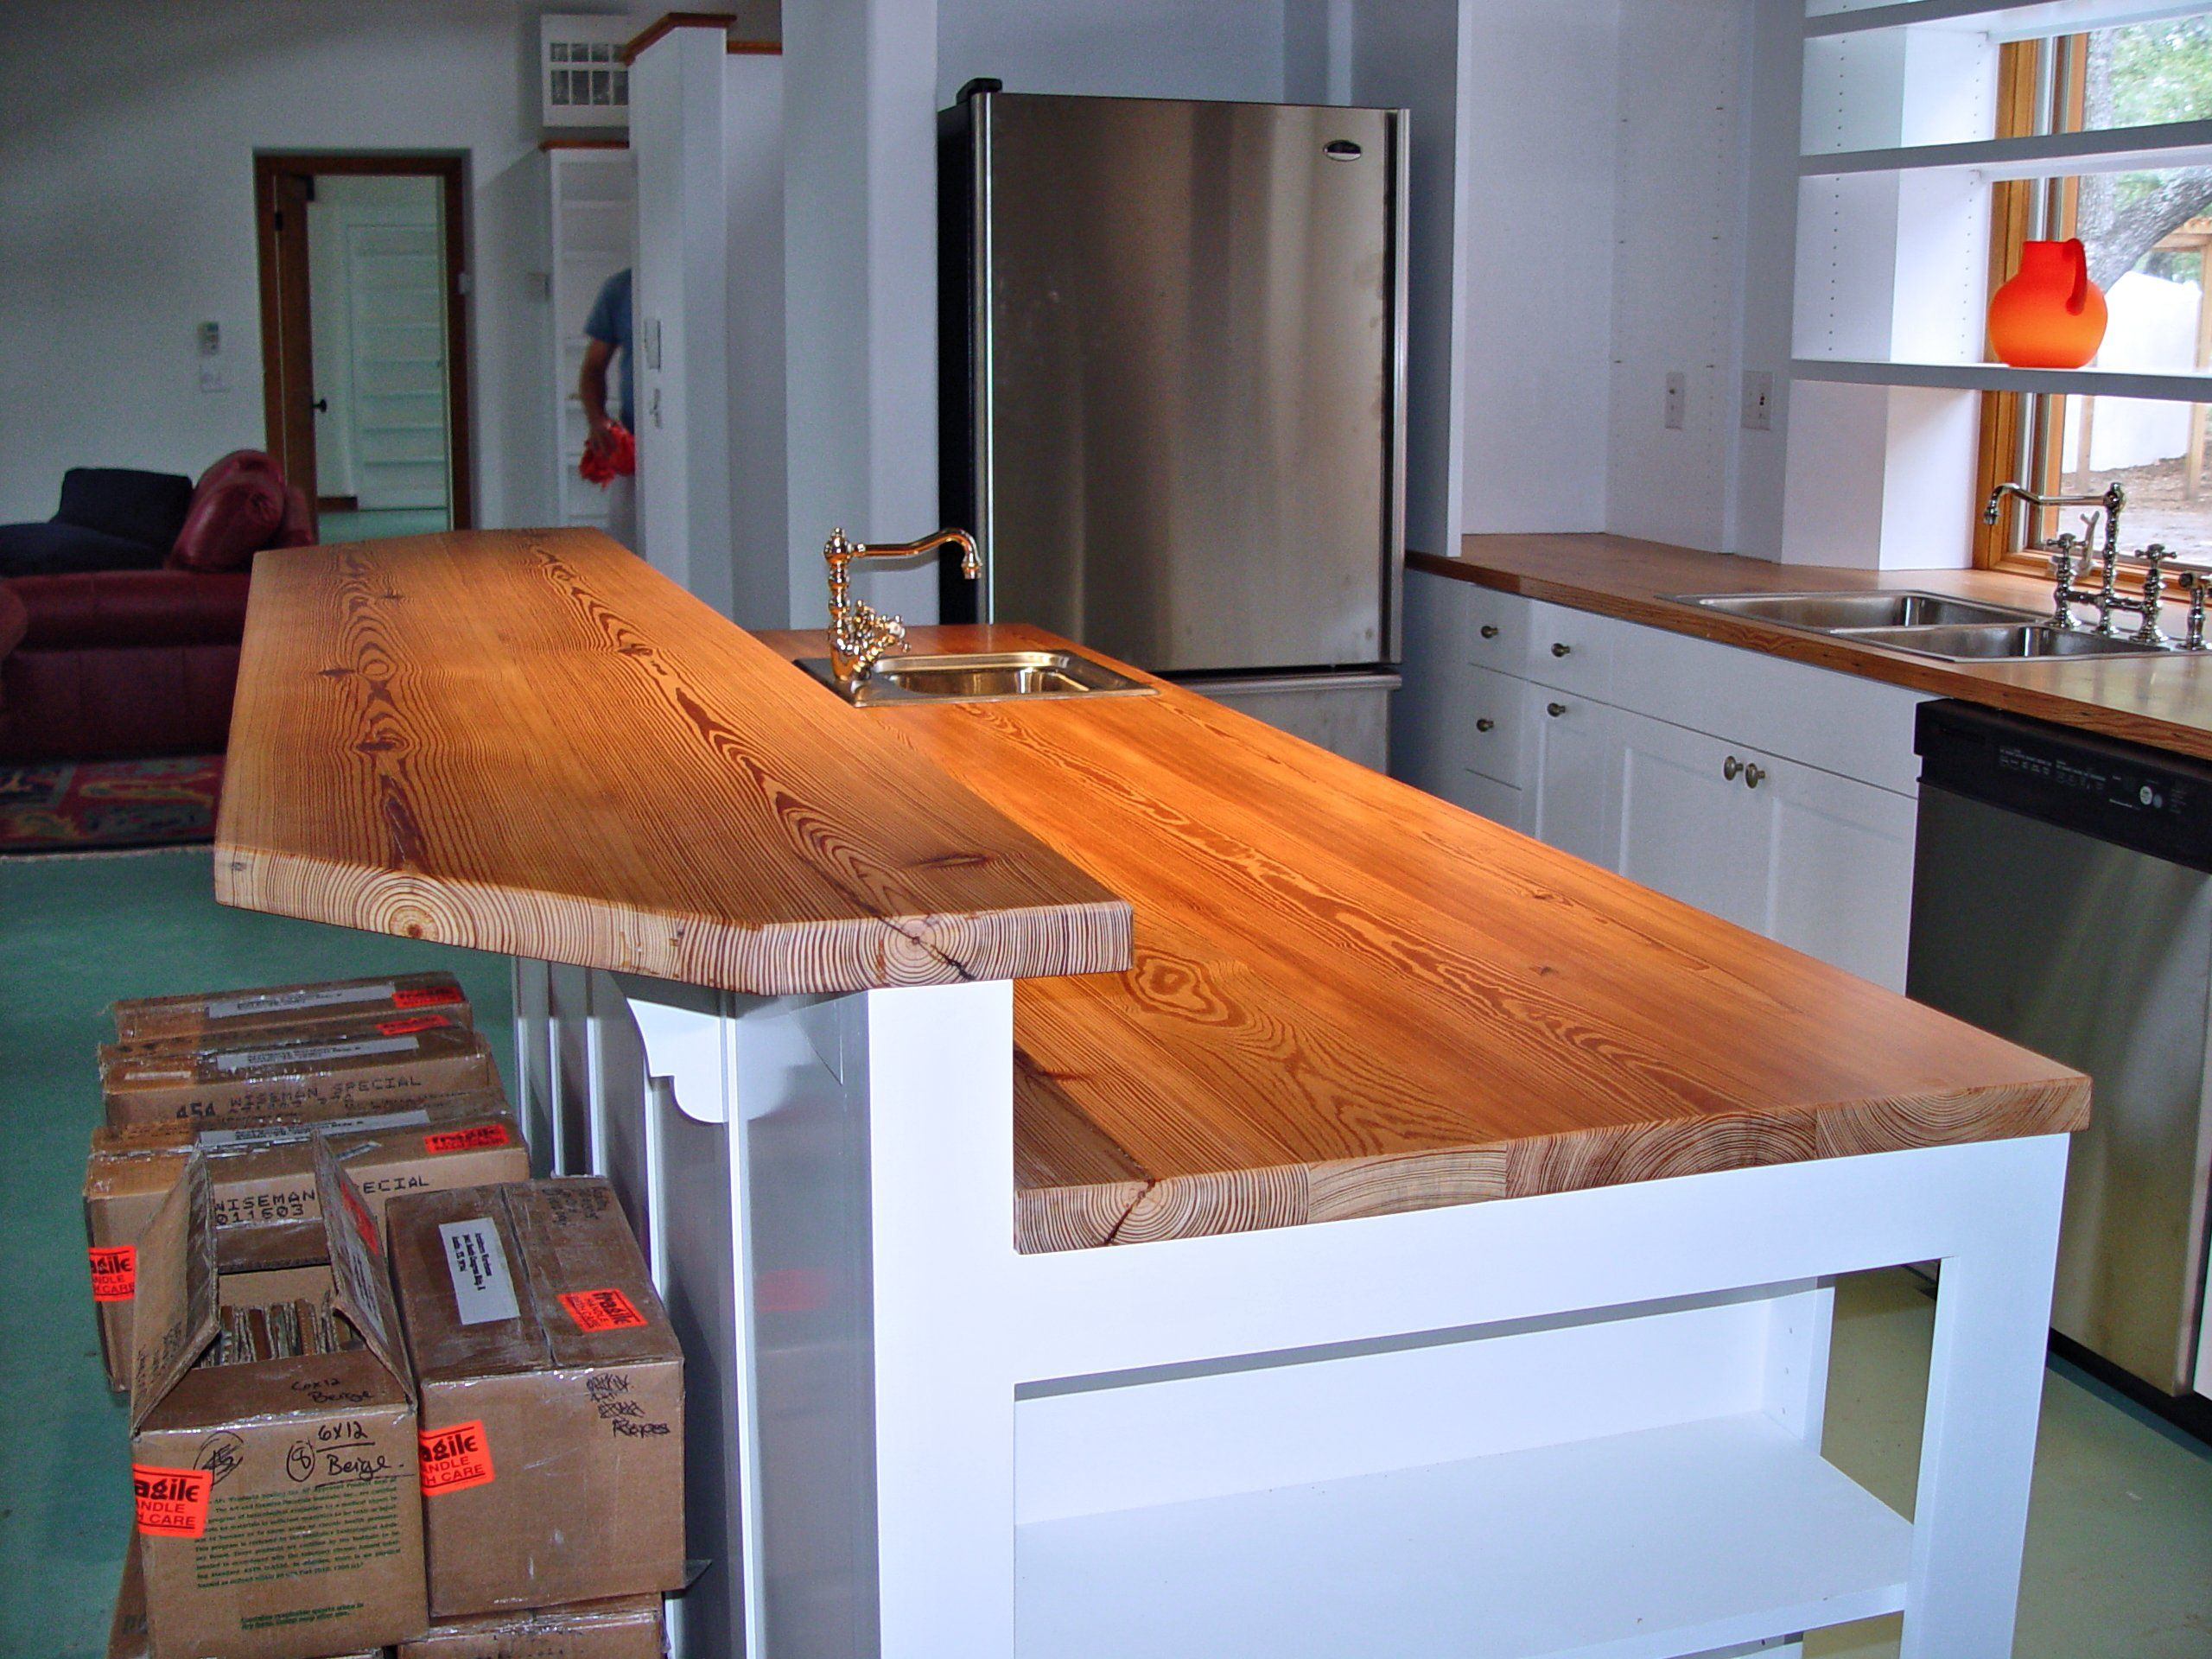 reclaimed longleaf wood countertop photos bar top kitchen tables Reclaimed Longleaf Pine face grain custom wood counter top and bar top